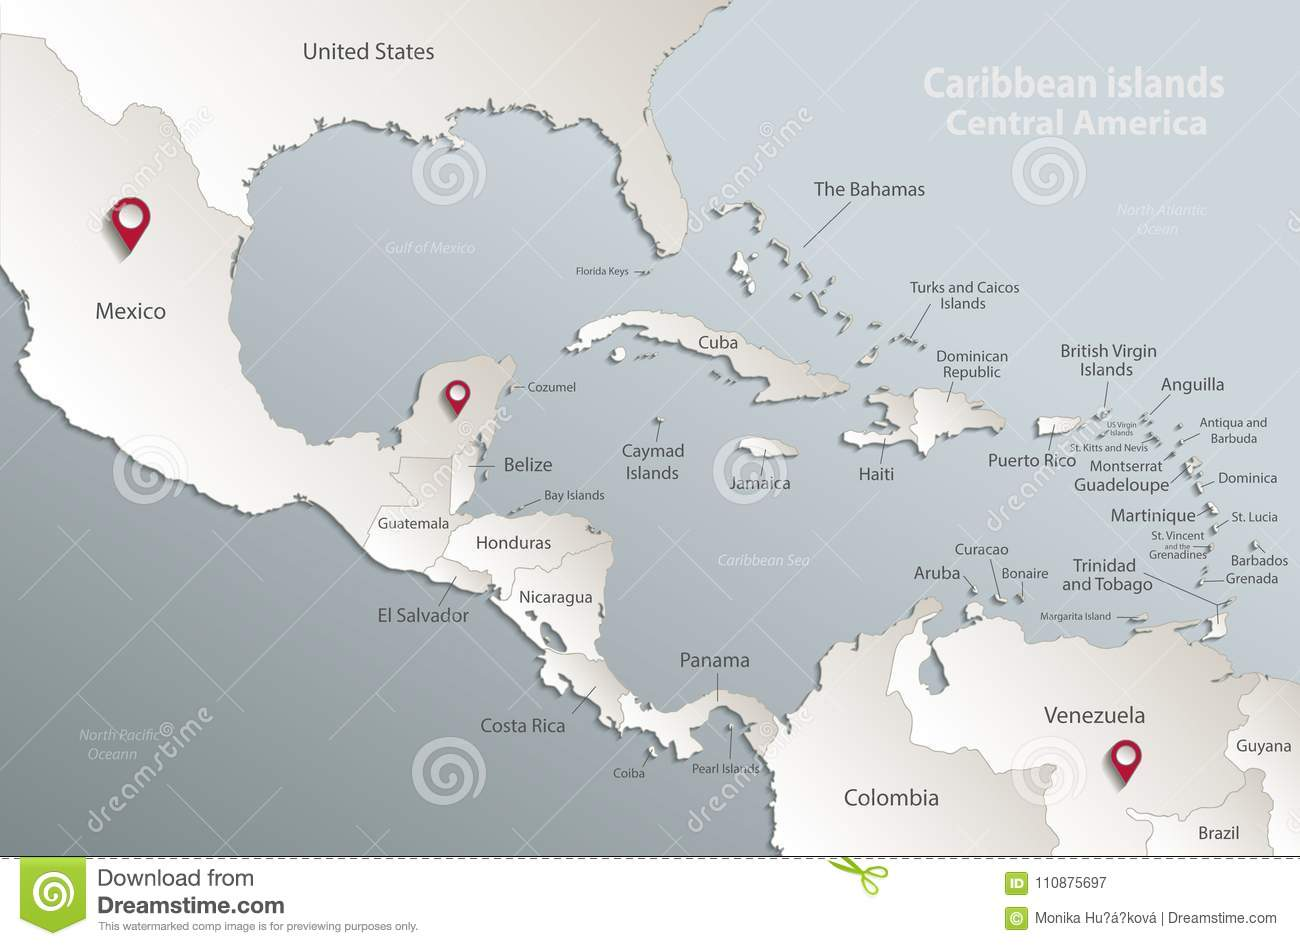 Caribbean Islands Central America Map Card Blue White 3D Stock ...